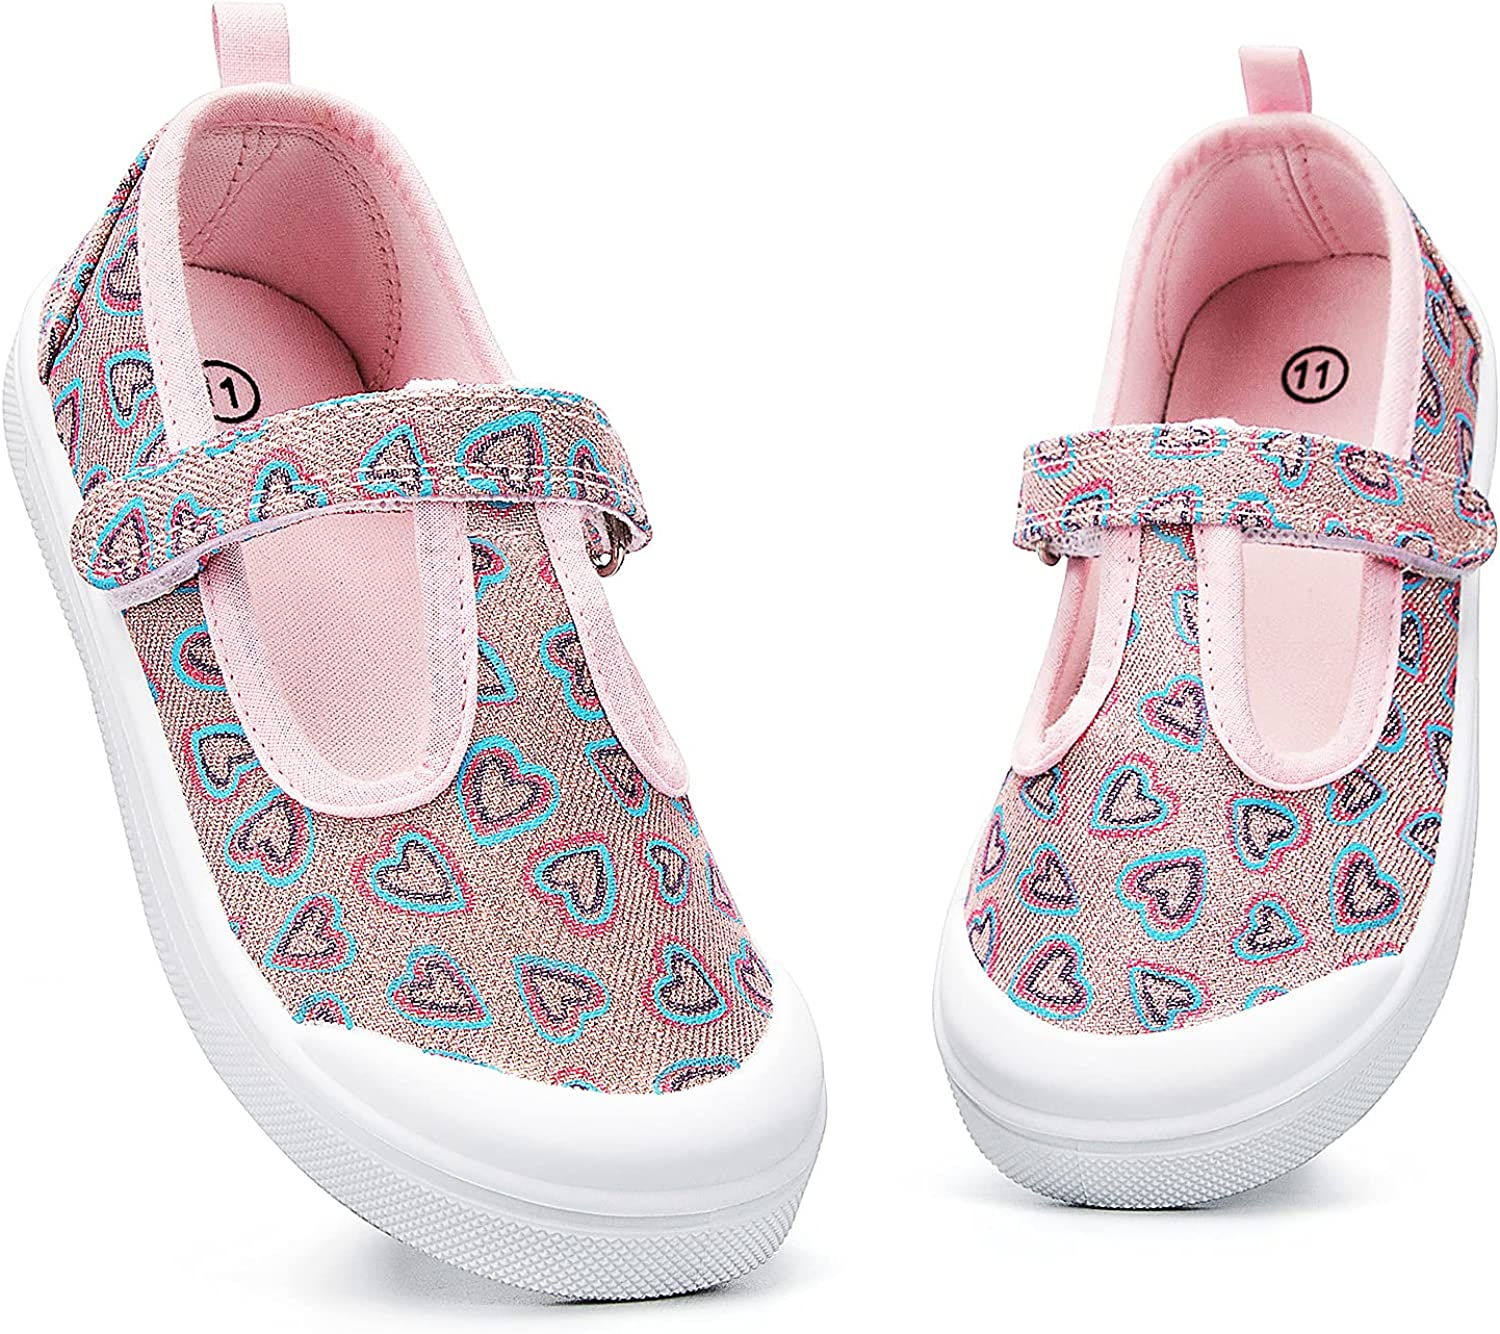 K KomForme Toddler Girls Shoes Little Super beauty product restock quality top Jane Canv Flats Mary Kids 70% OFF Outlet